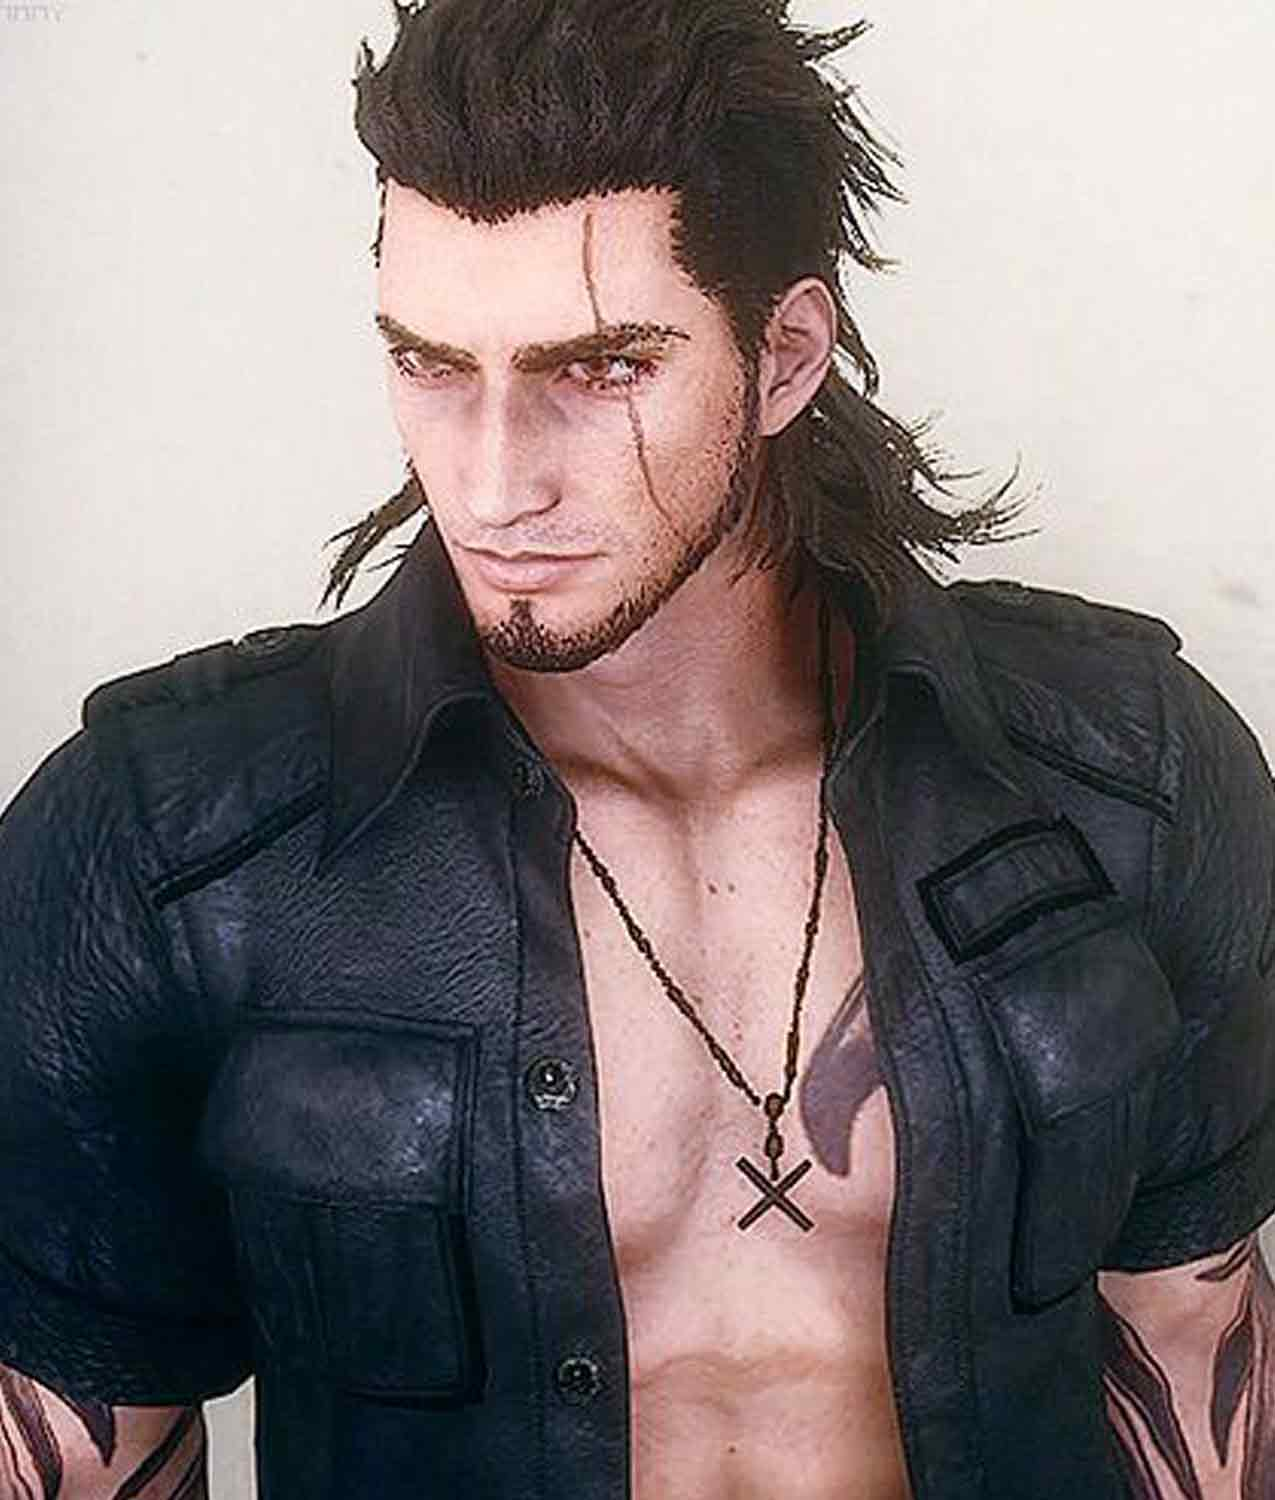 Final Fantasy Xv Gladiolus Amicitia Jacket Jackets Creator Read more information about the character gladiolus amicitia from brotherhood: final fantasy 15 gladiolus amicitia leather jacket